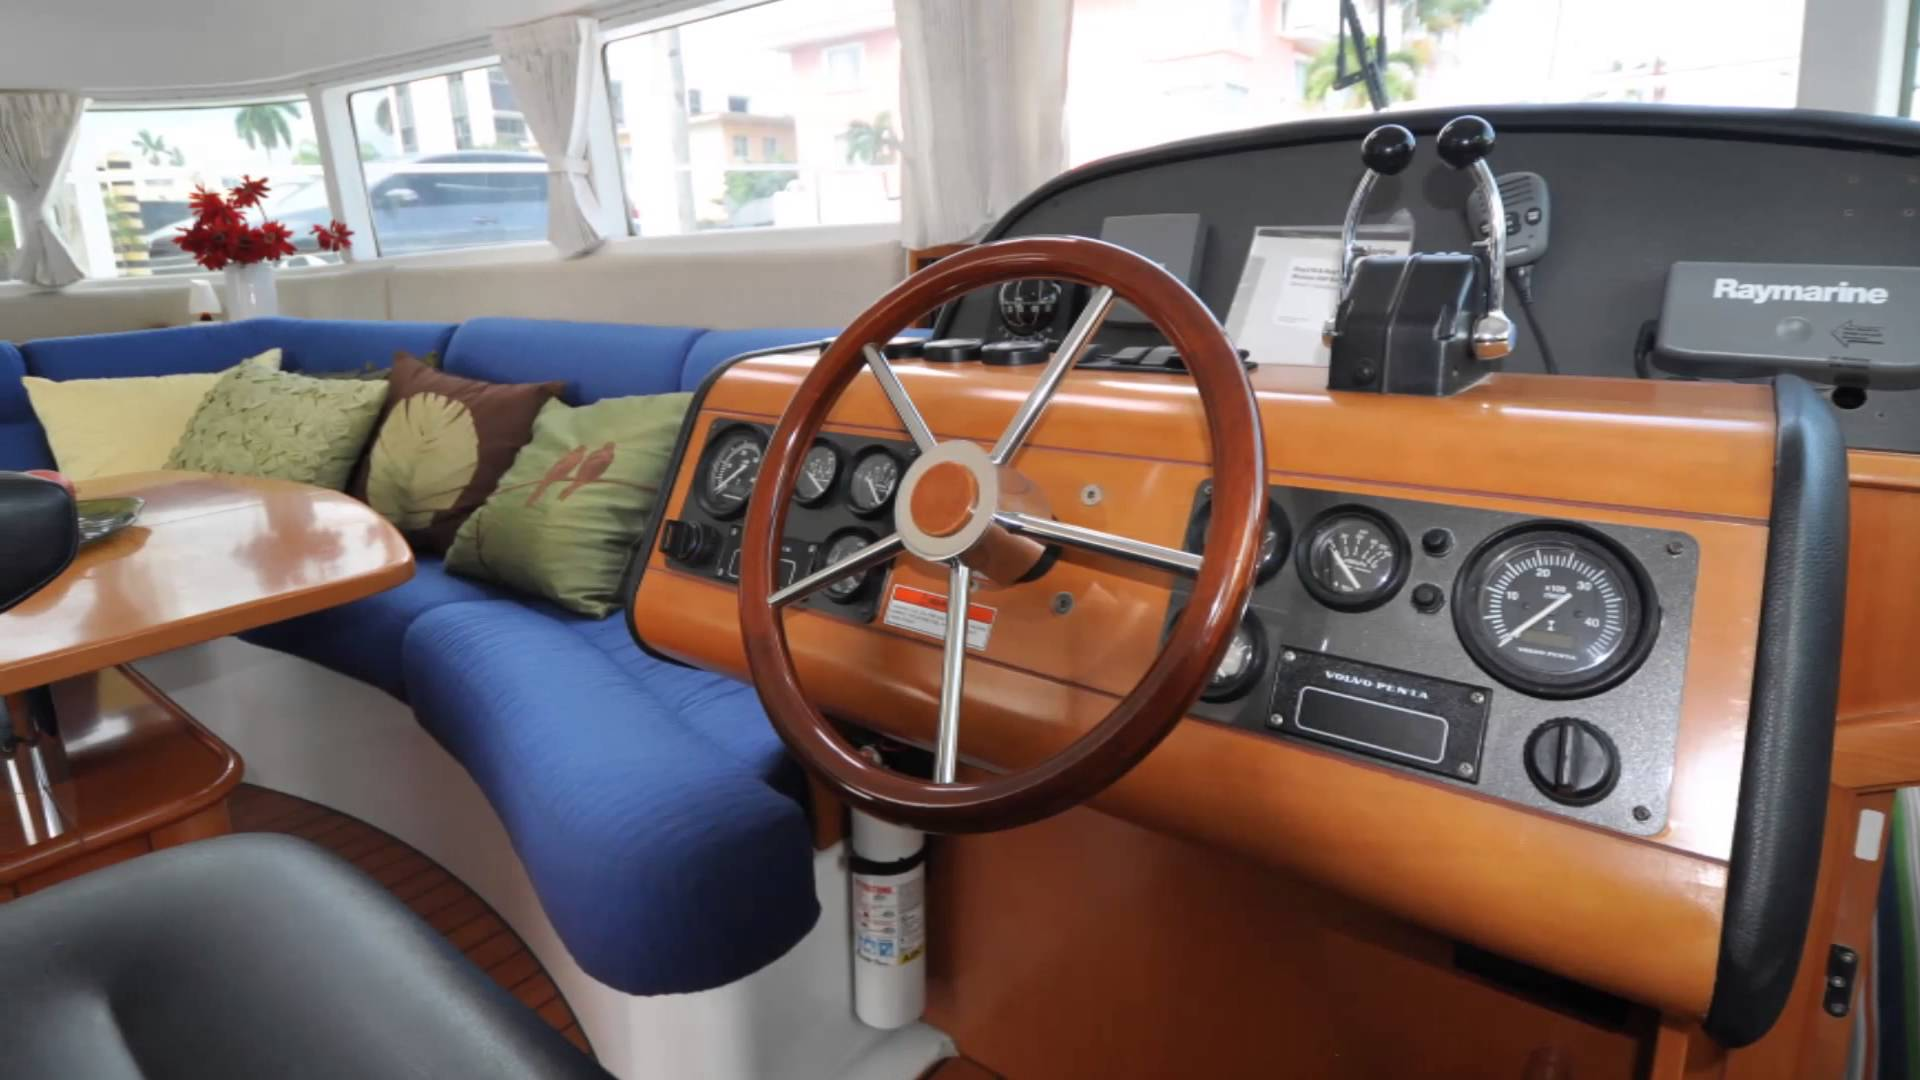 43-FT-Lagoon-Power -pilot house and interior dining